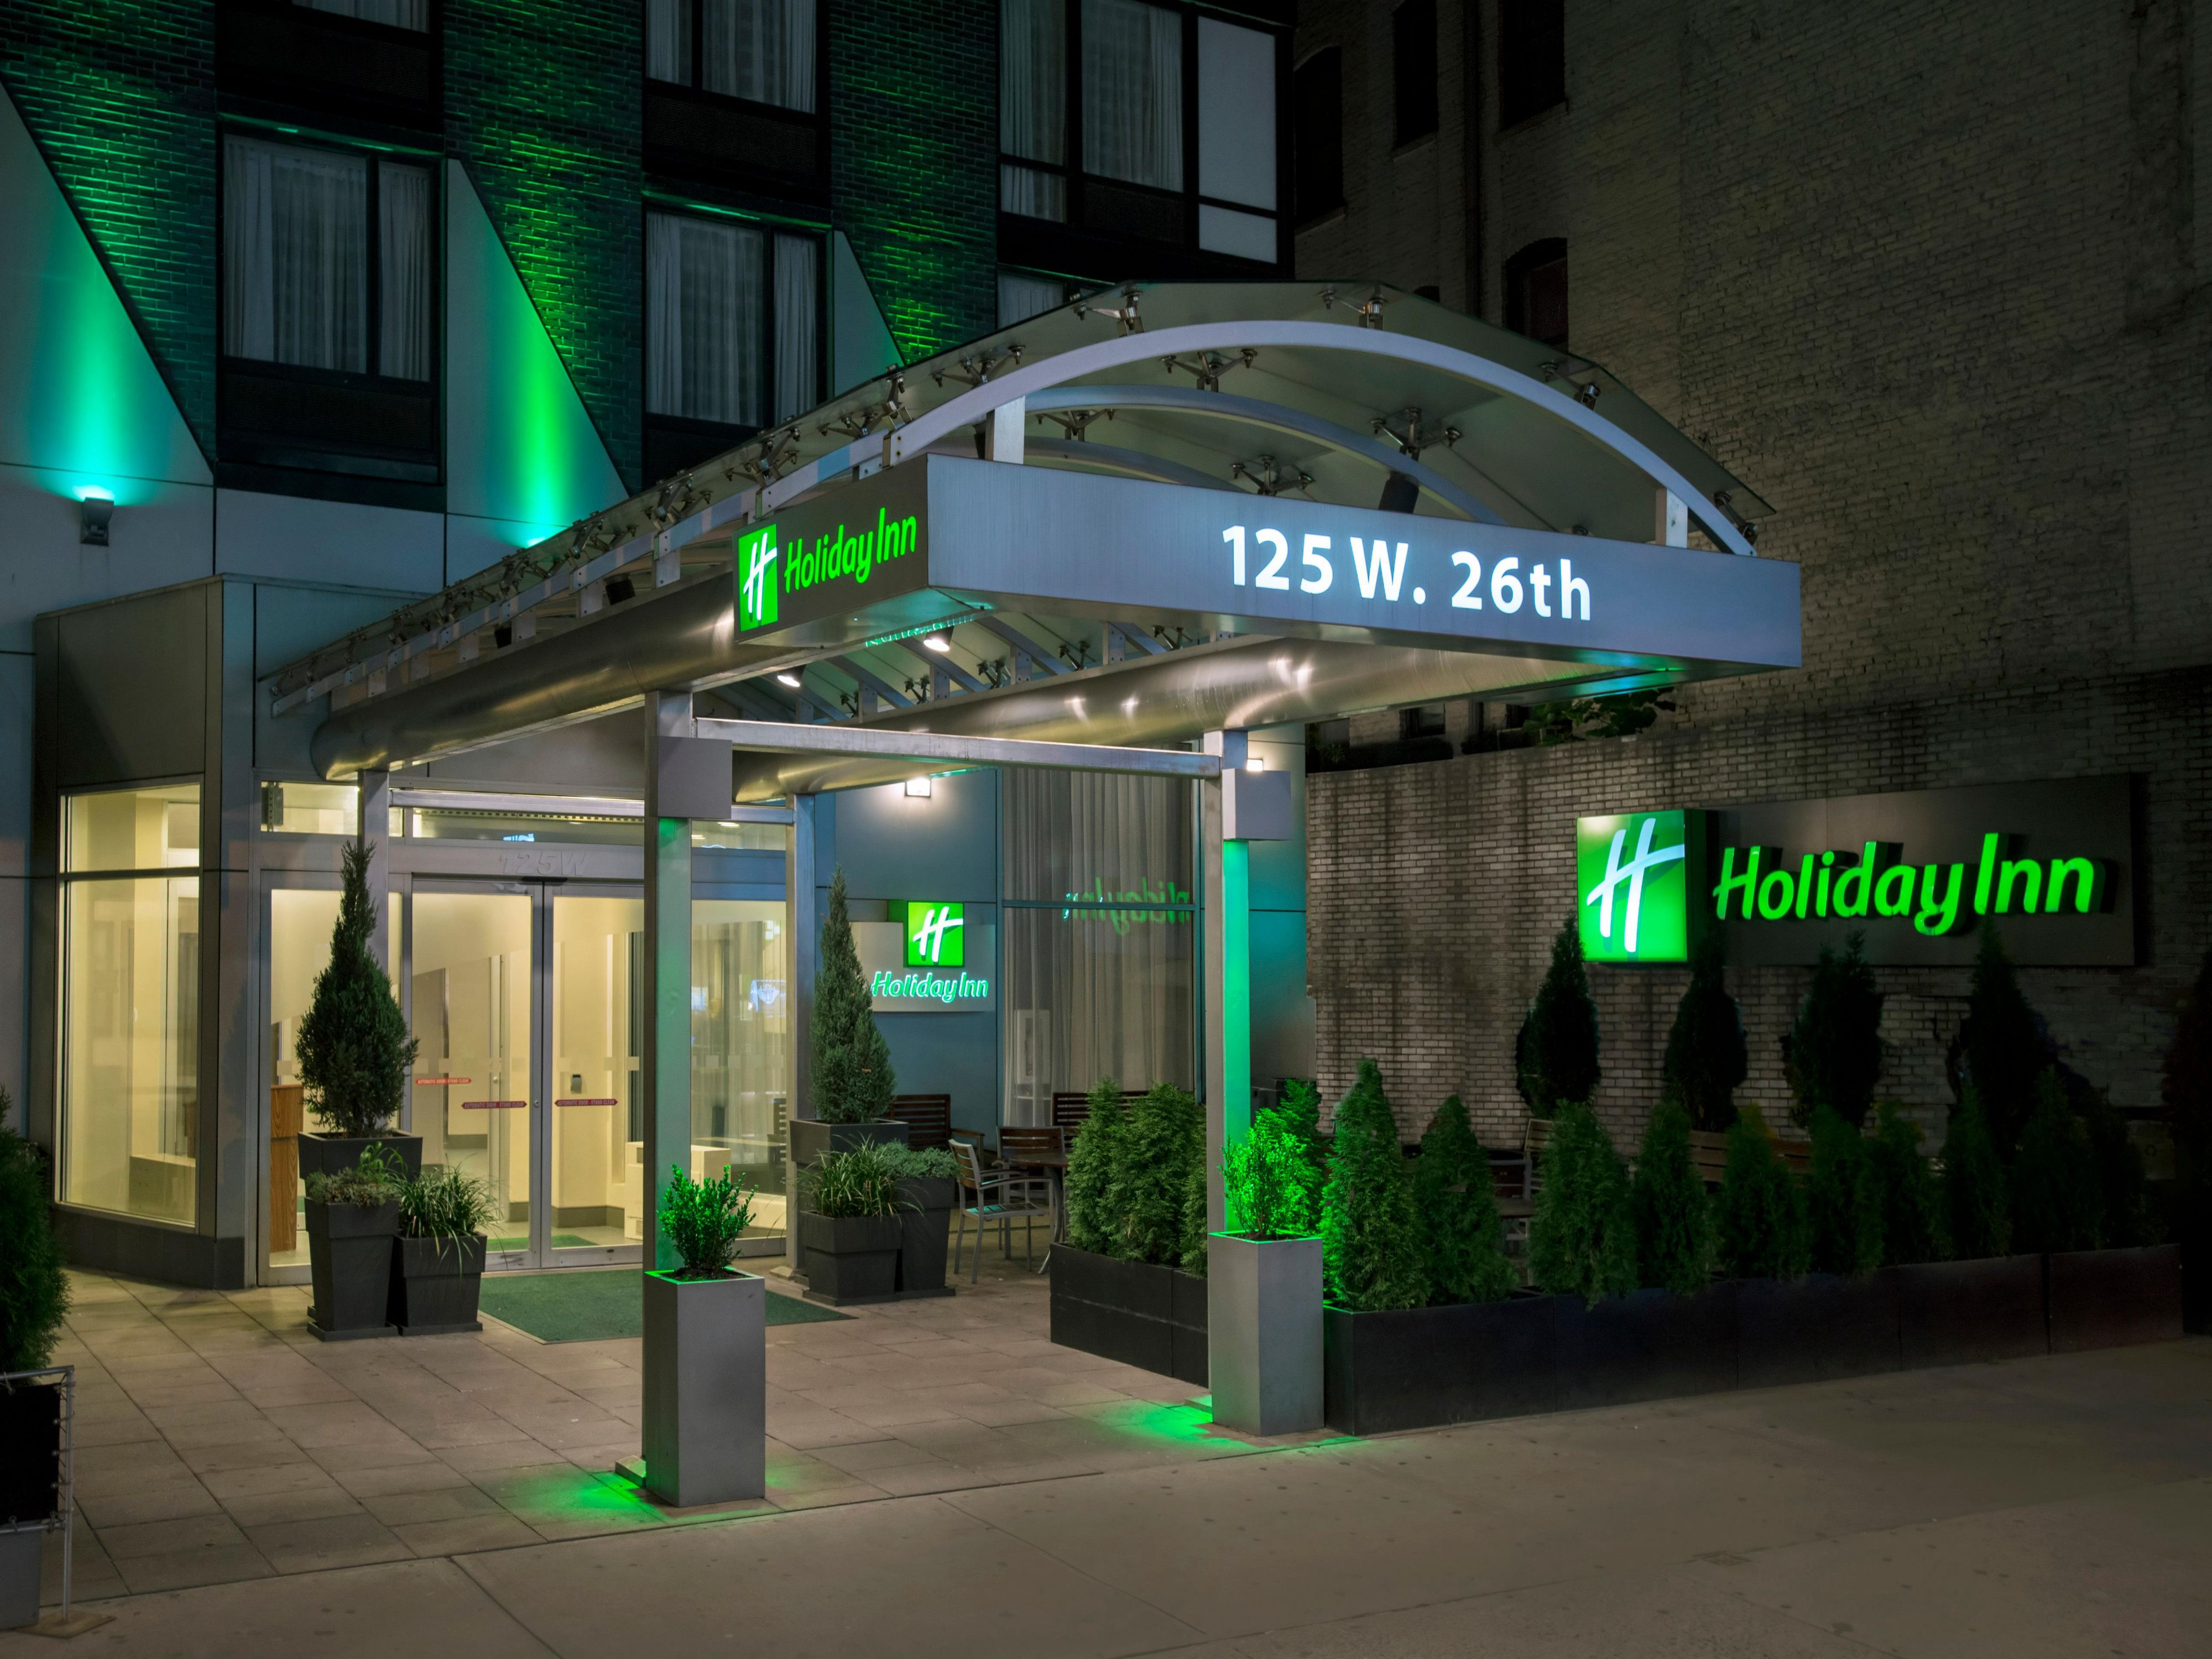 Holiday Inn Manhattan 6th Ave - Chelsea